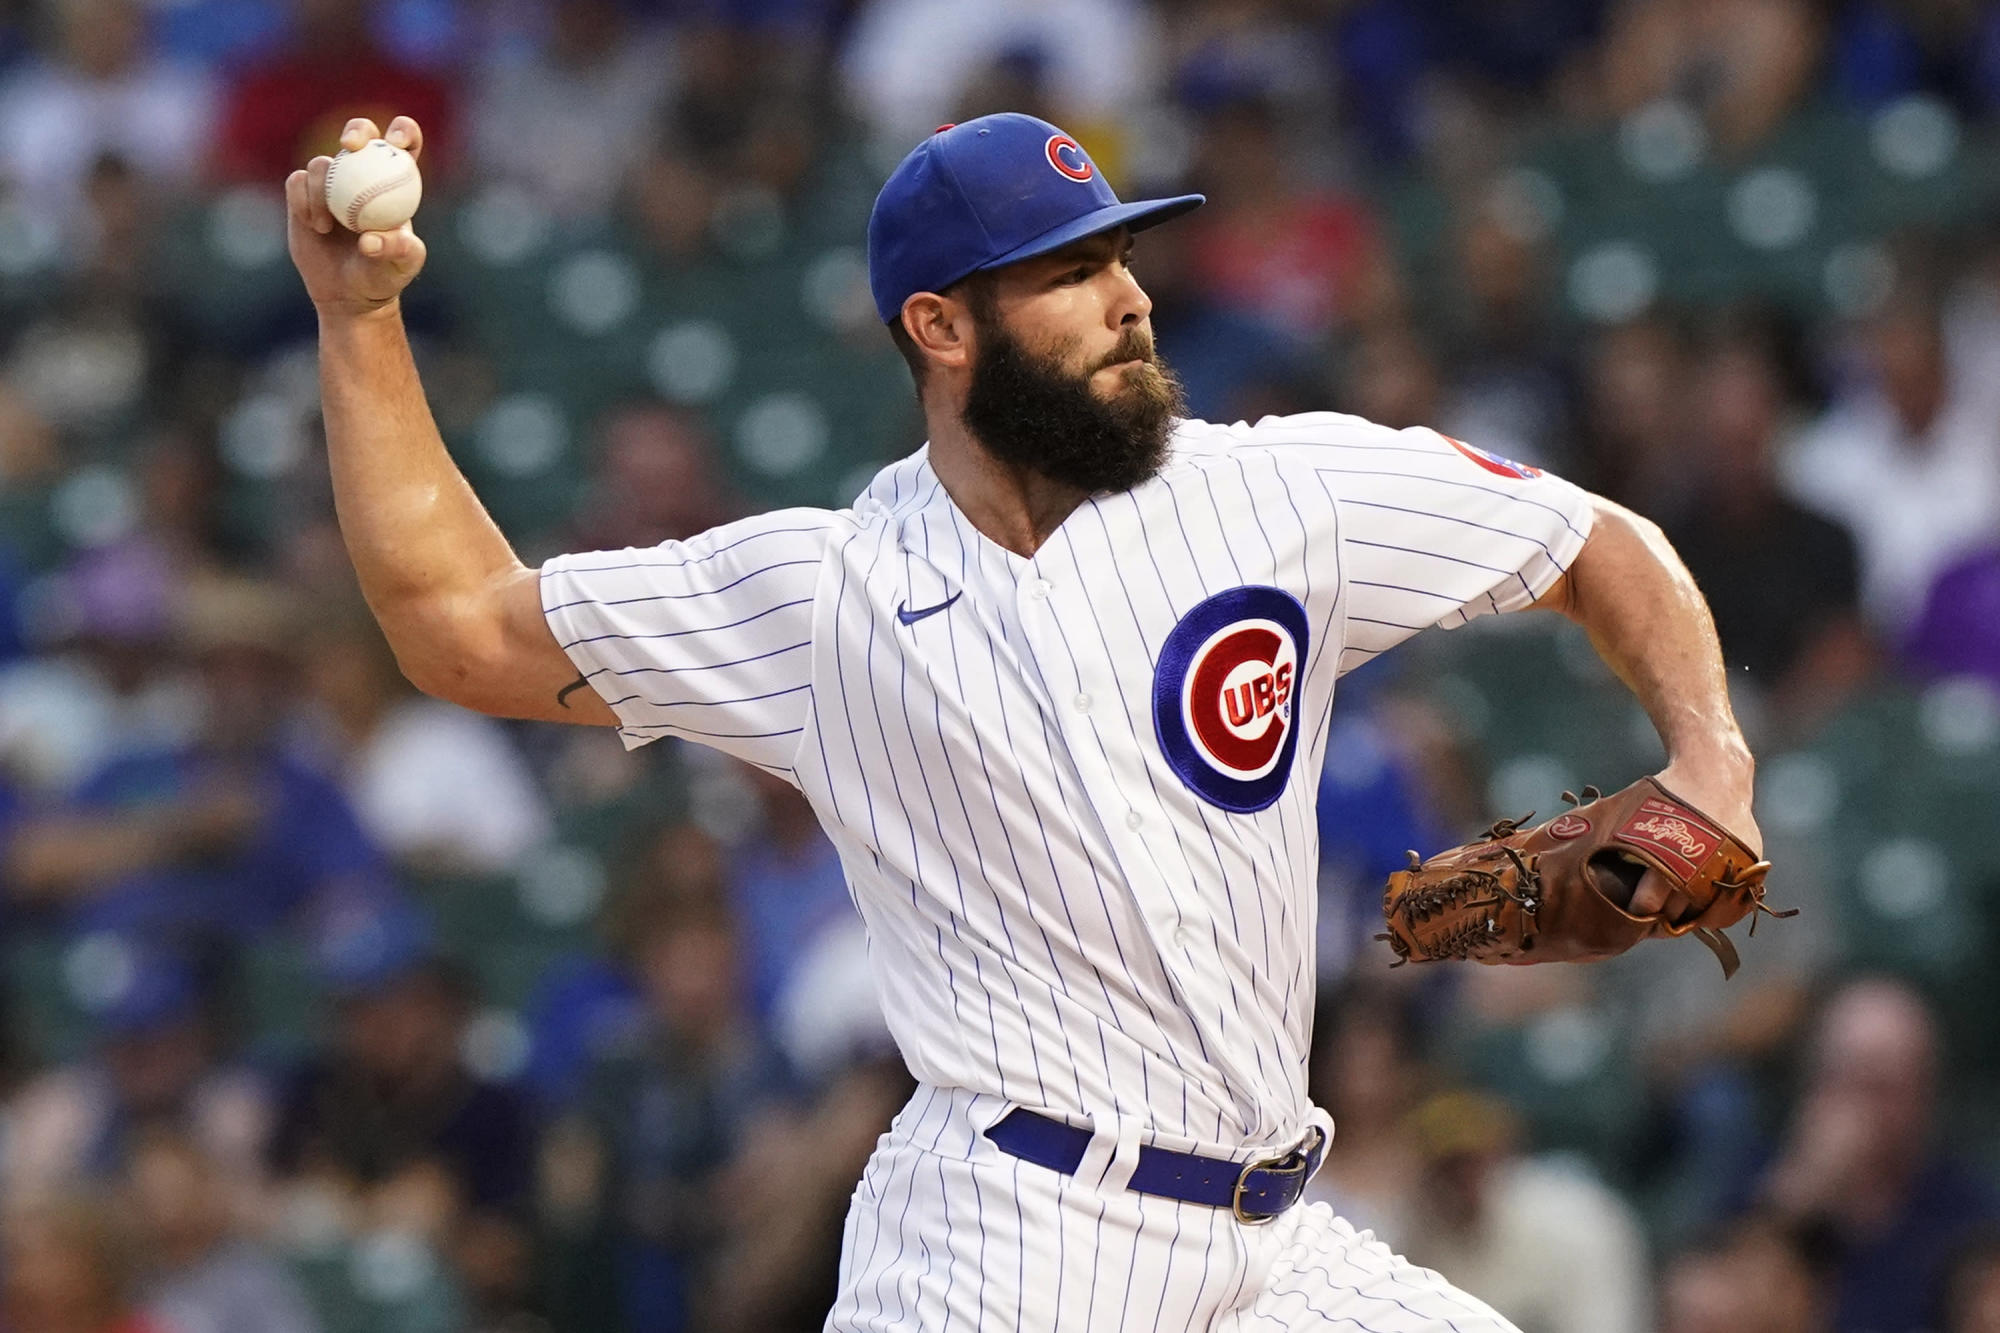 Cubs release former ace Arrieta after rough return to team